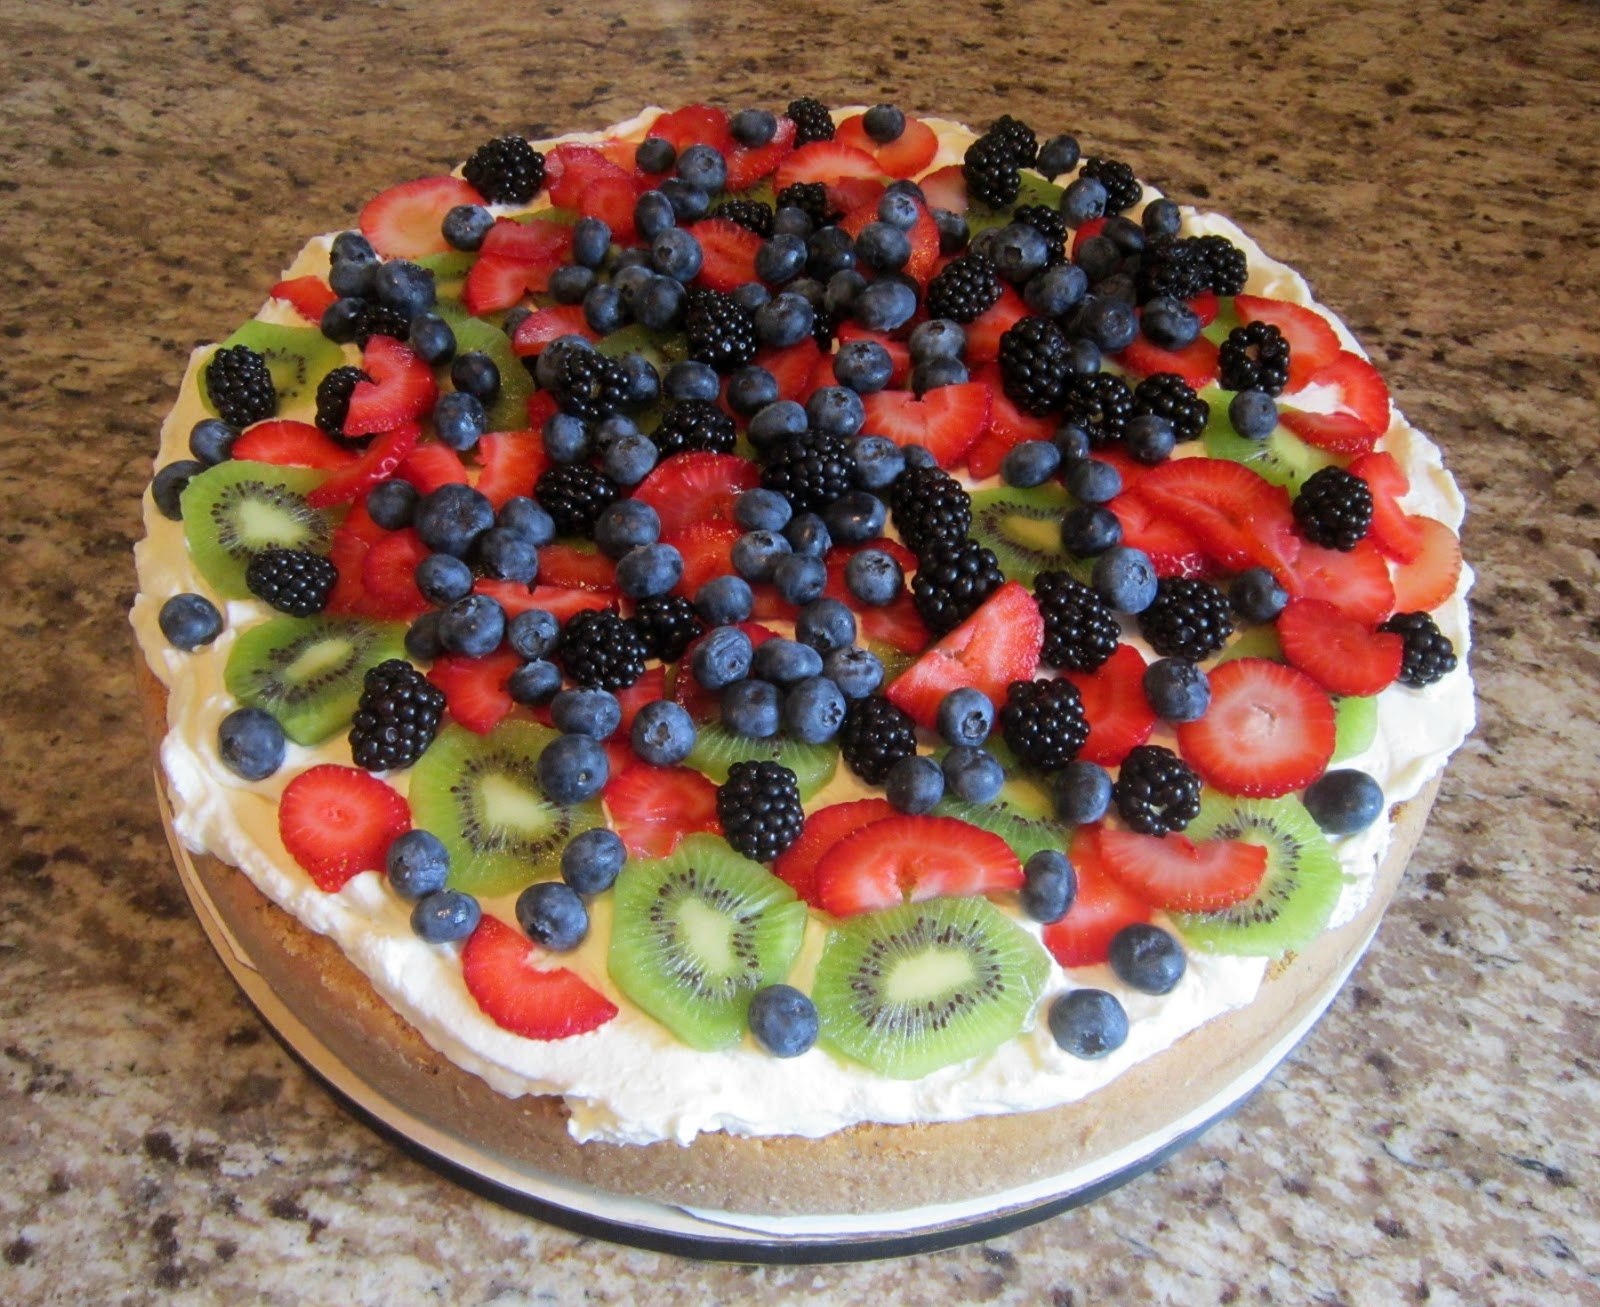 Delectable Cakes Poppy Seed Cake with Fresh Berries